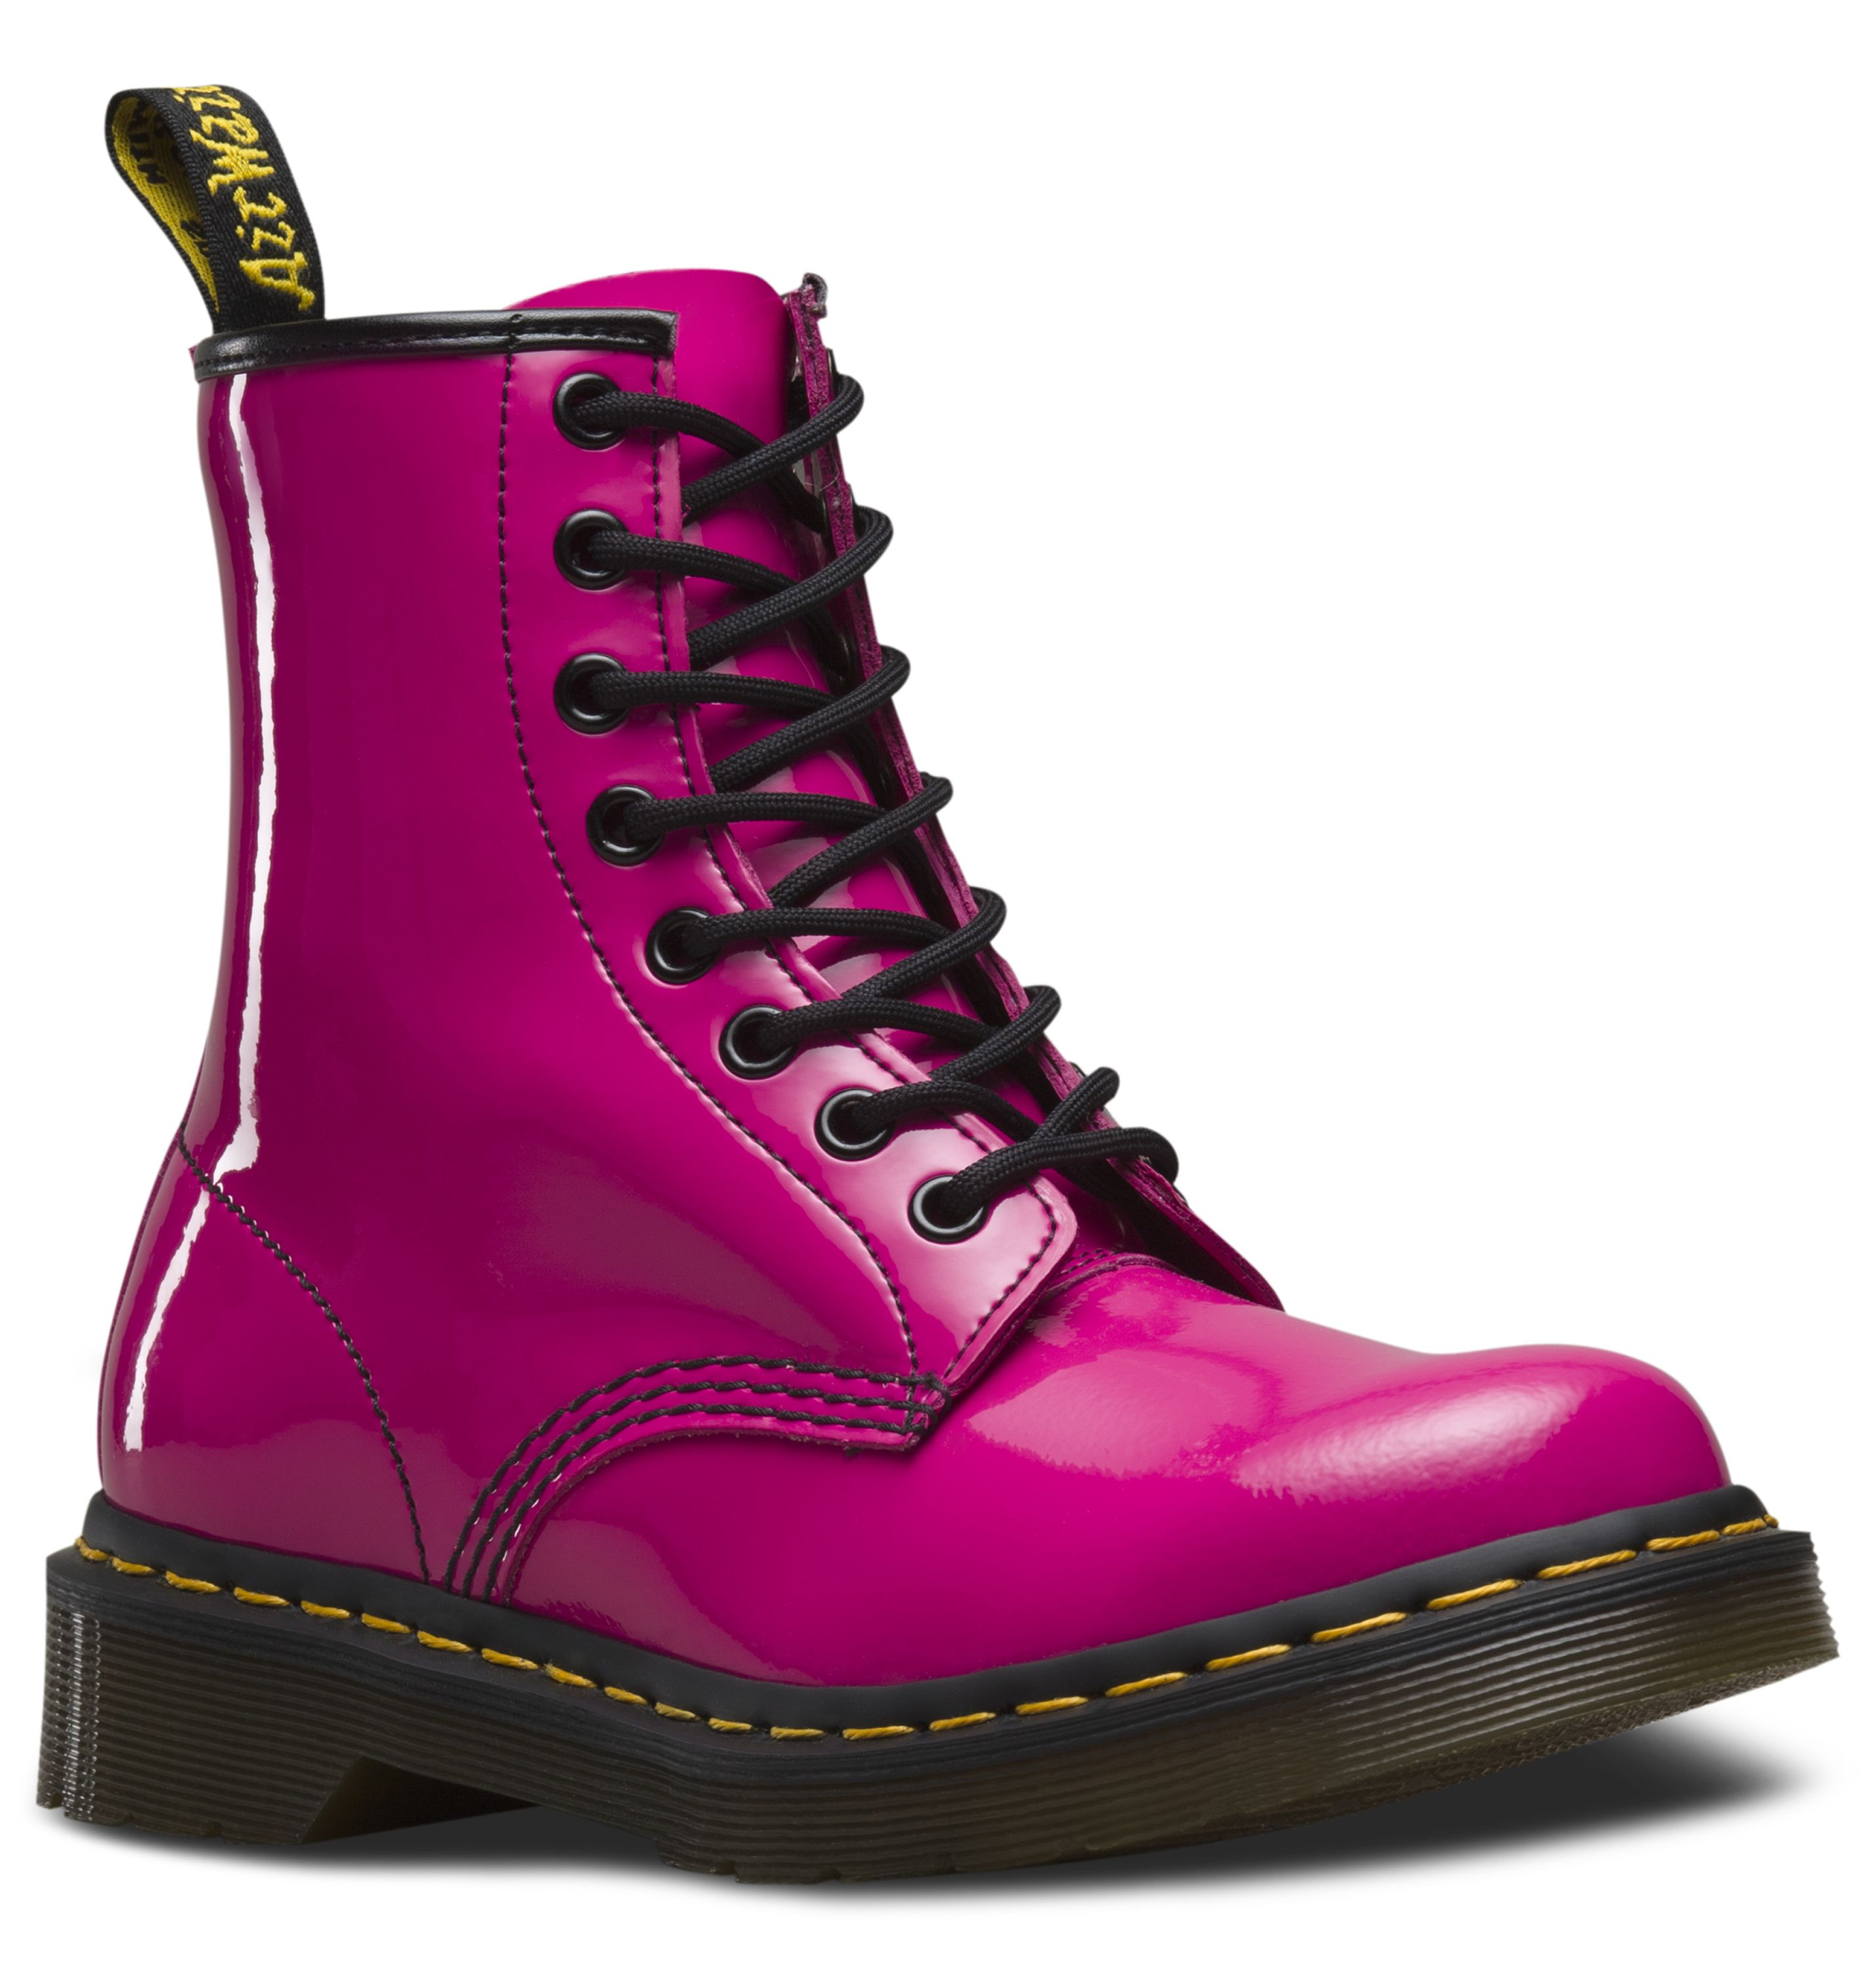 46858814ae4 Dr martens 1460 patent